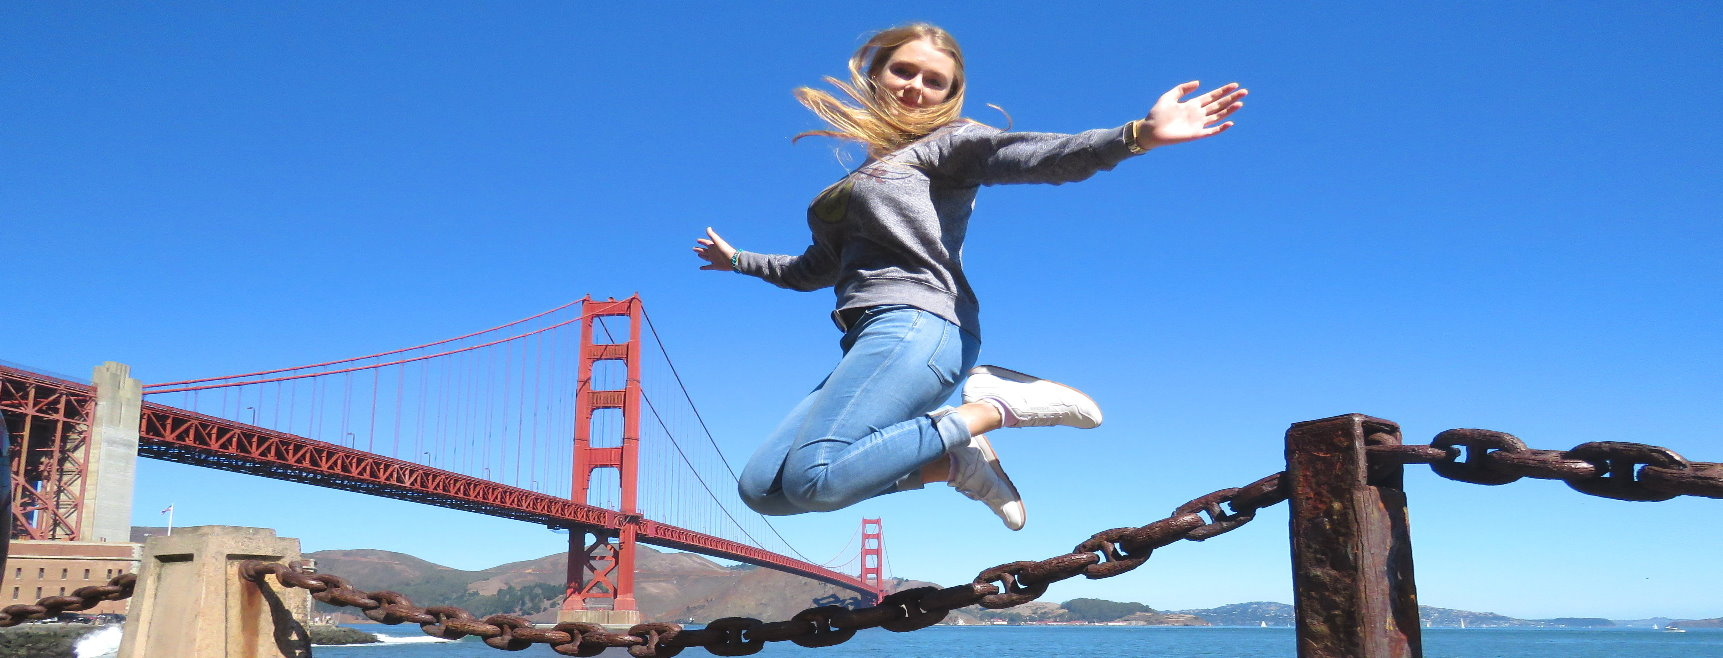 things_to_do_in_san_francisco_kid-friendly_attractions_for_teens